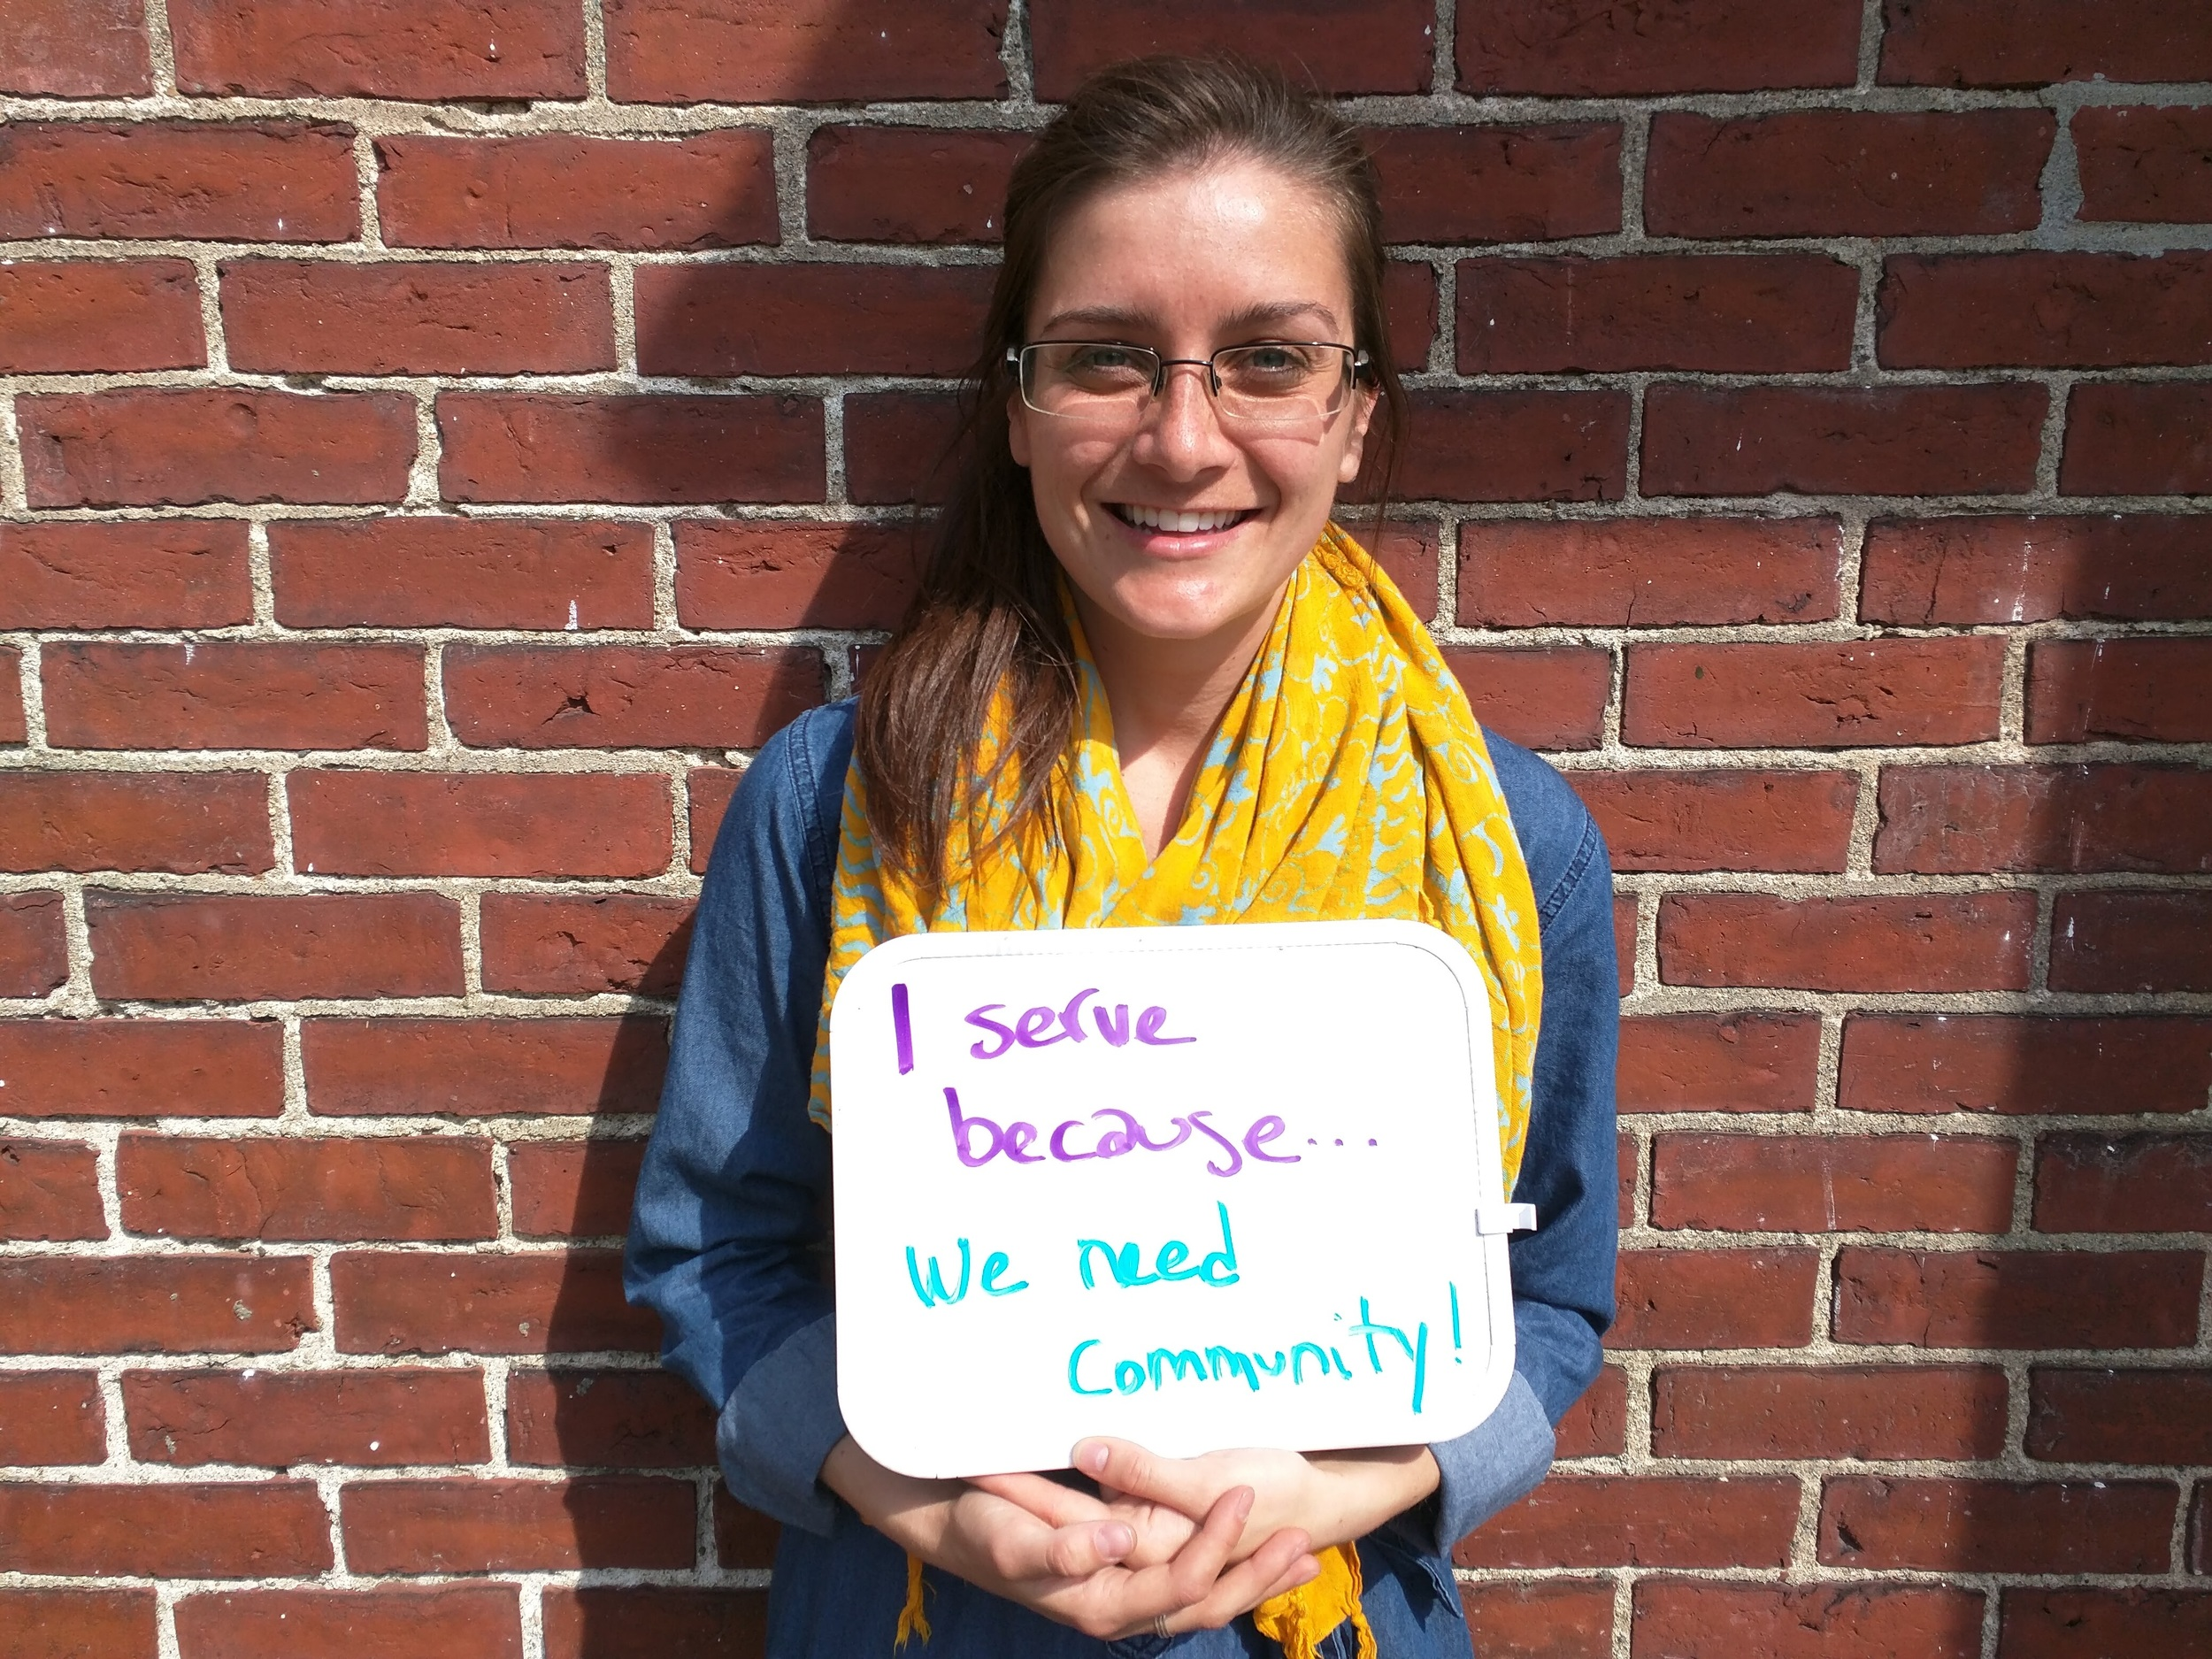 """""""I serve because we need community!"""" - Libby Gatti, Micah Fellow at MANNA & Cambridge Intentional Community"""